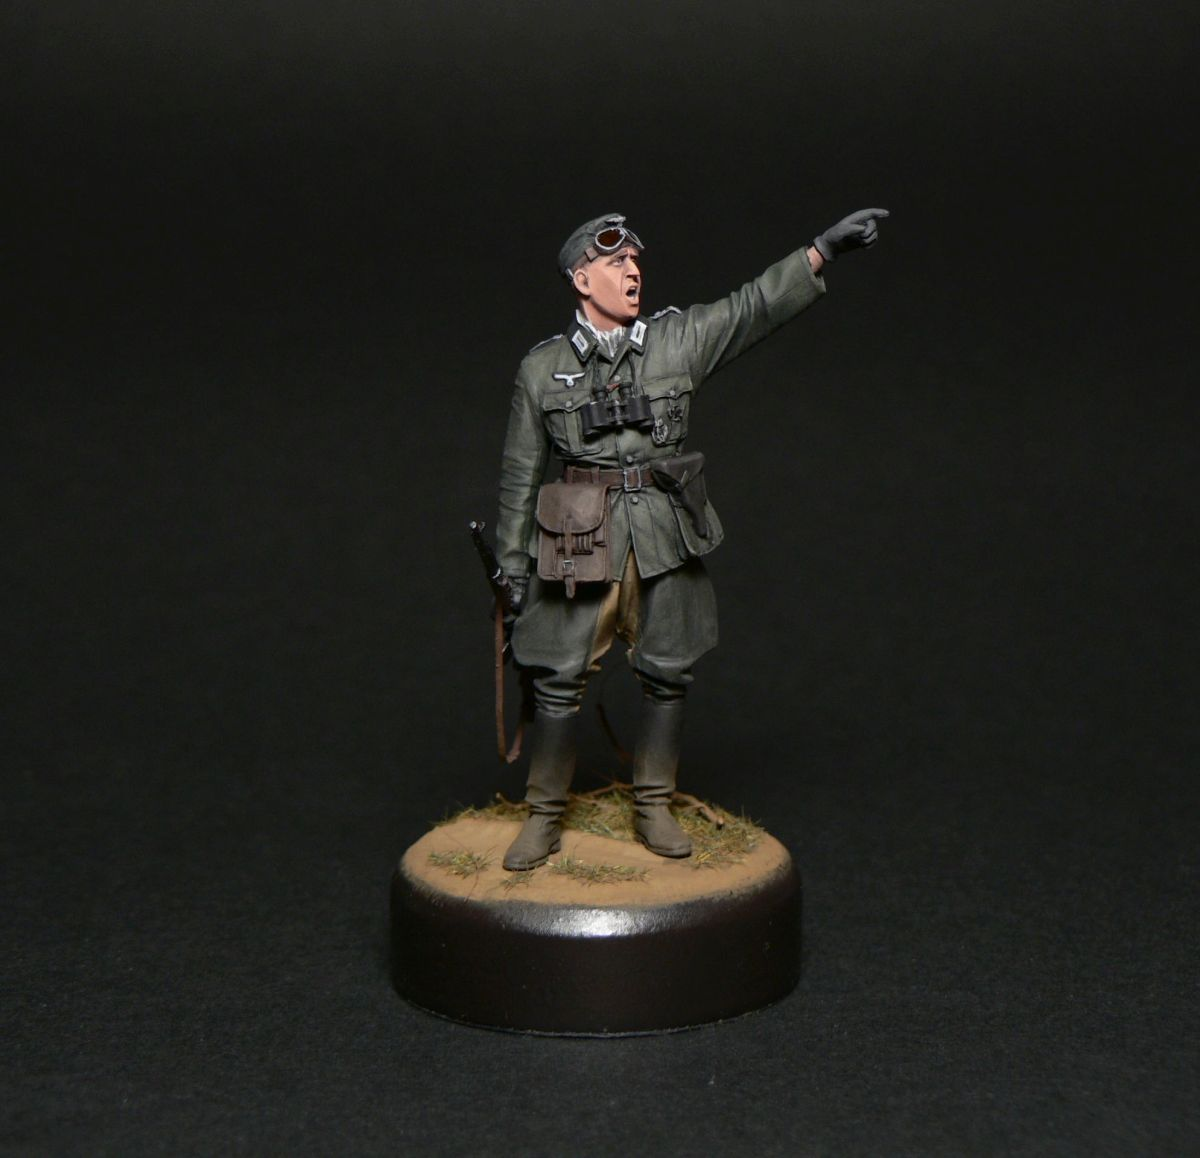 Figures: Oberleutnant, photo #1